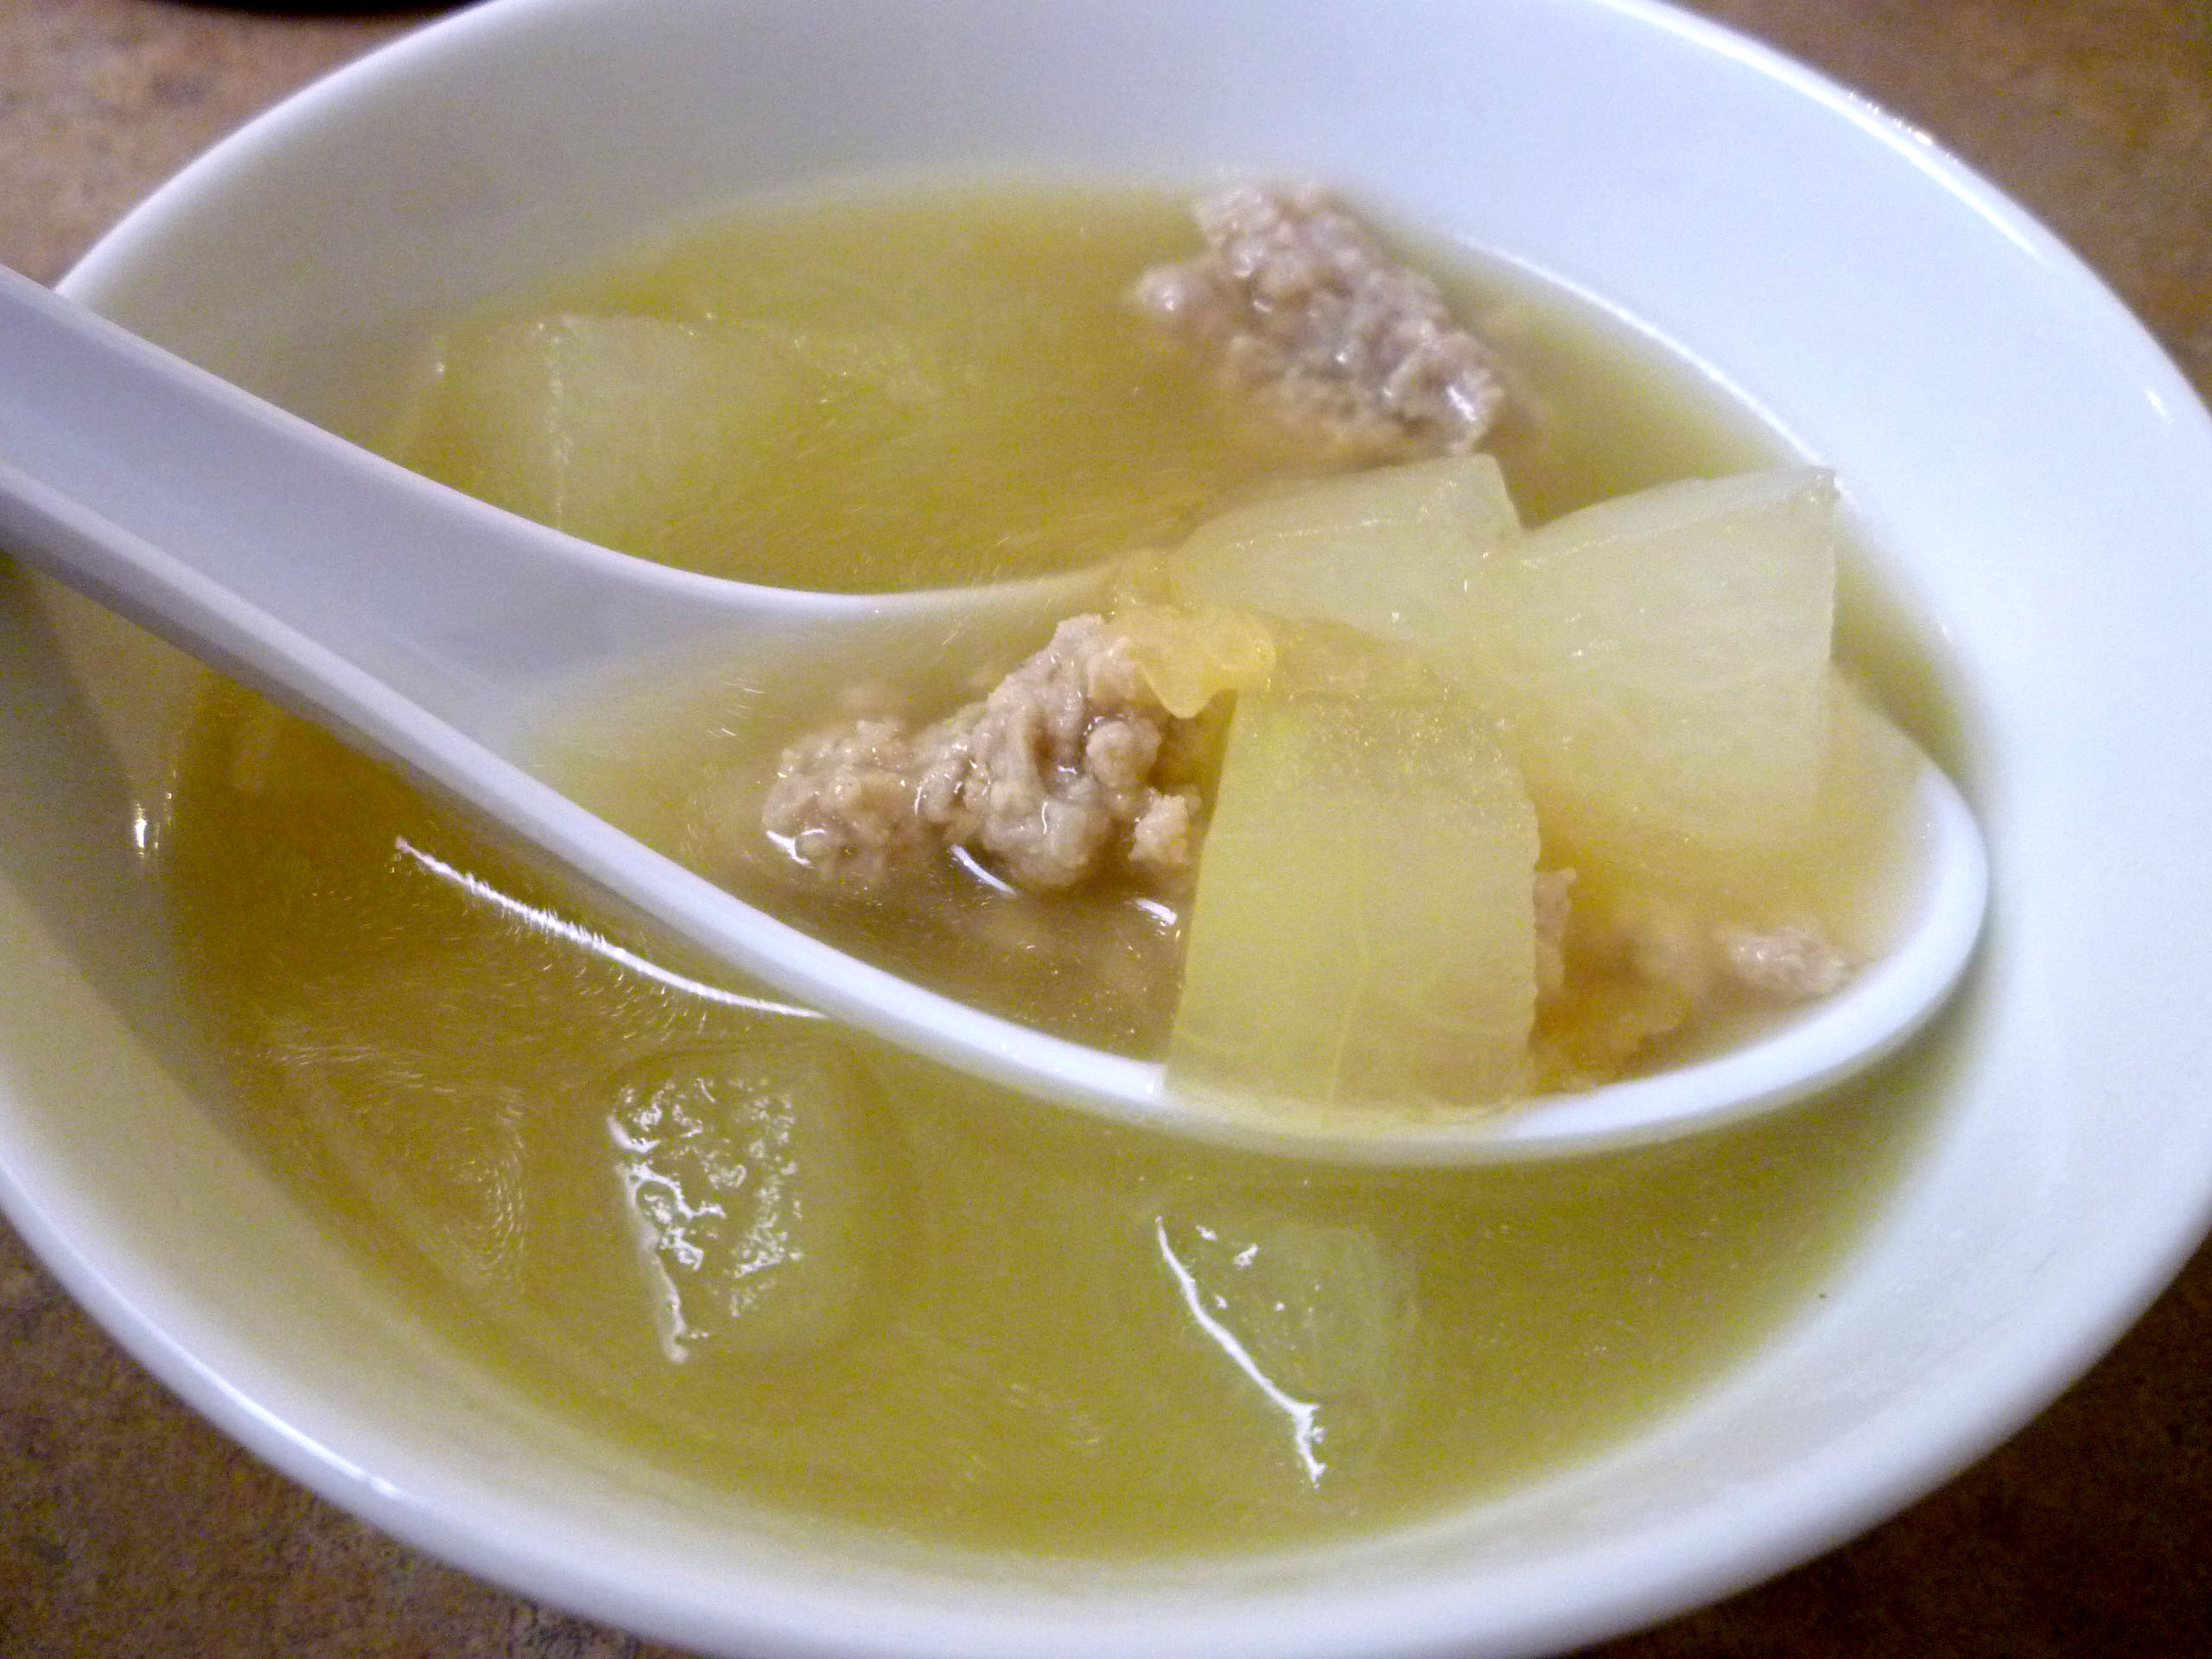 homemade: winter melon soup, 冬瓜汤 | whitneywu.com